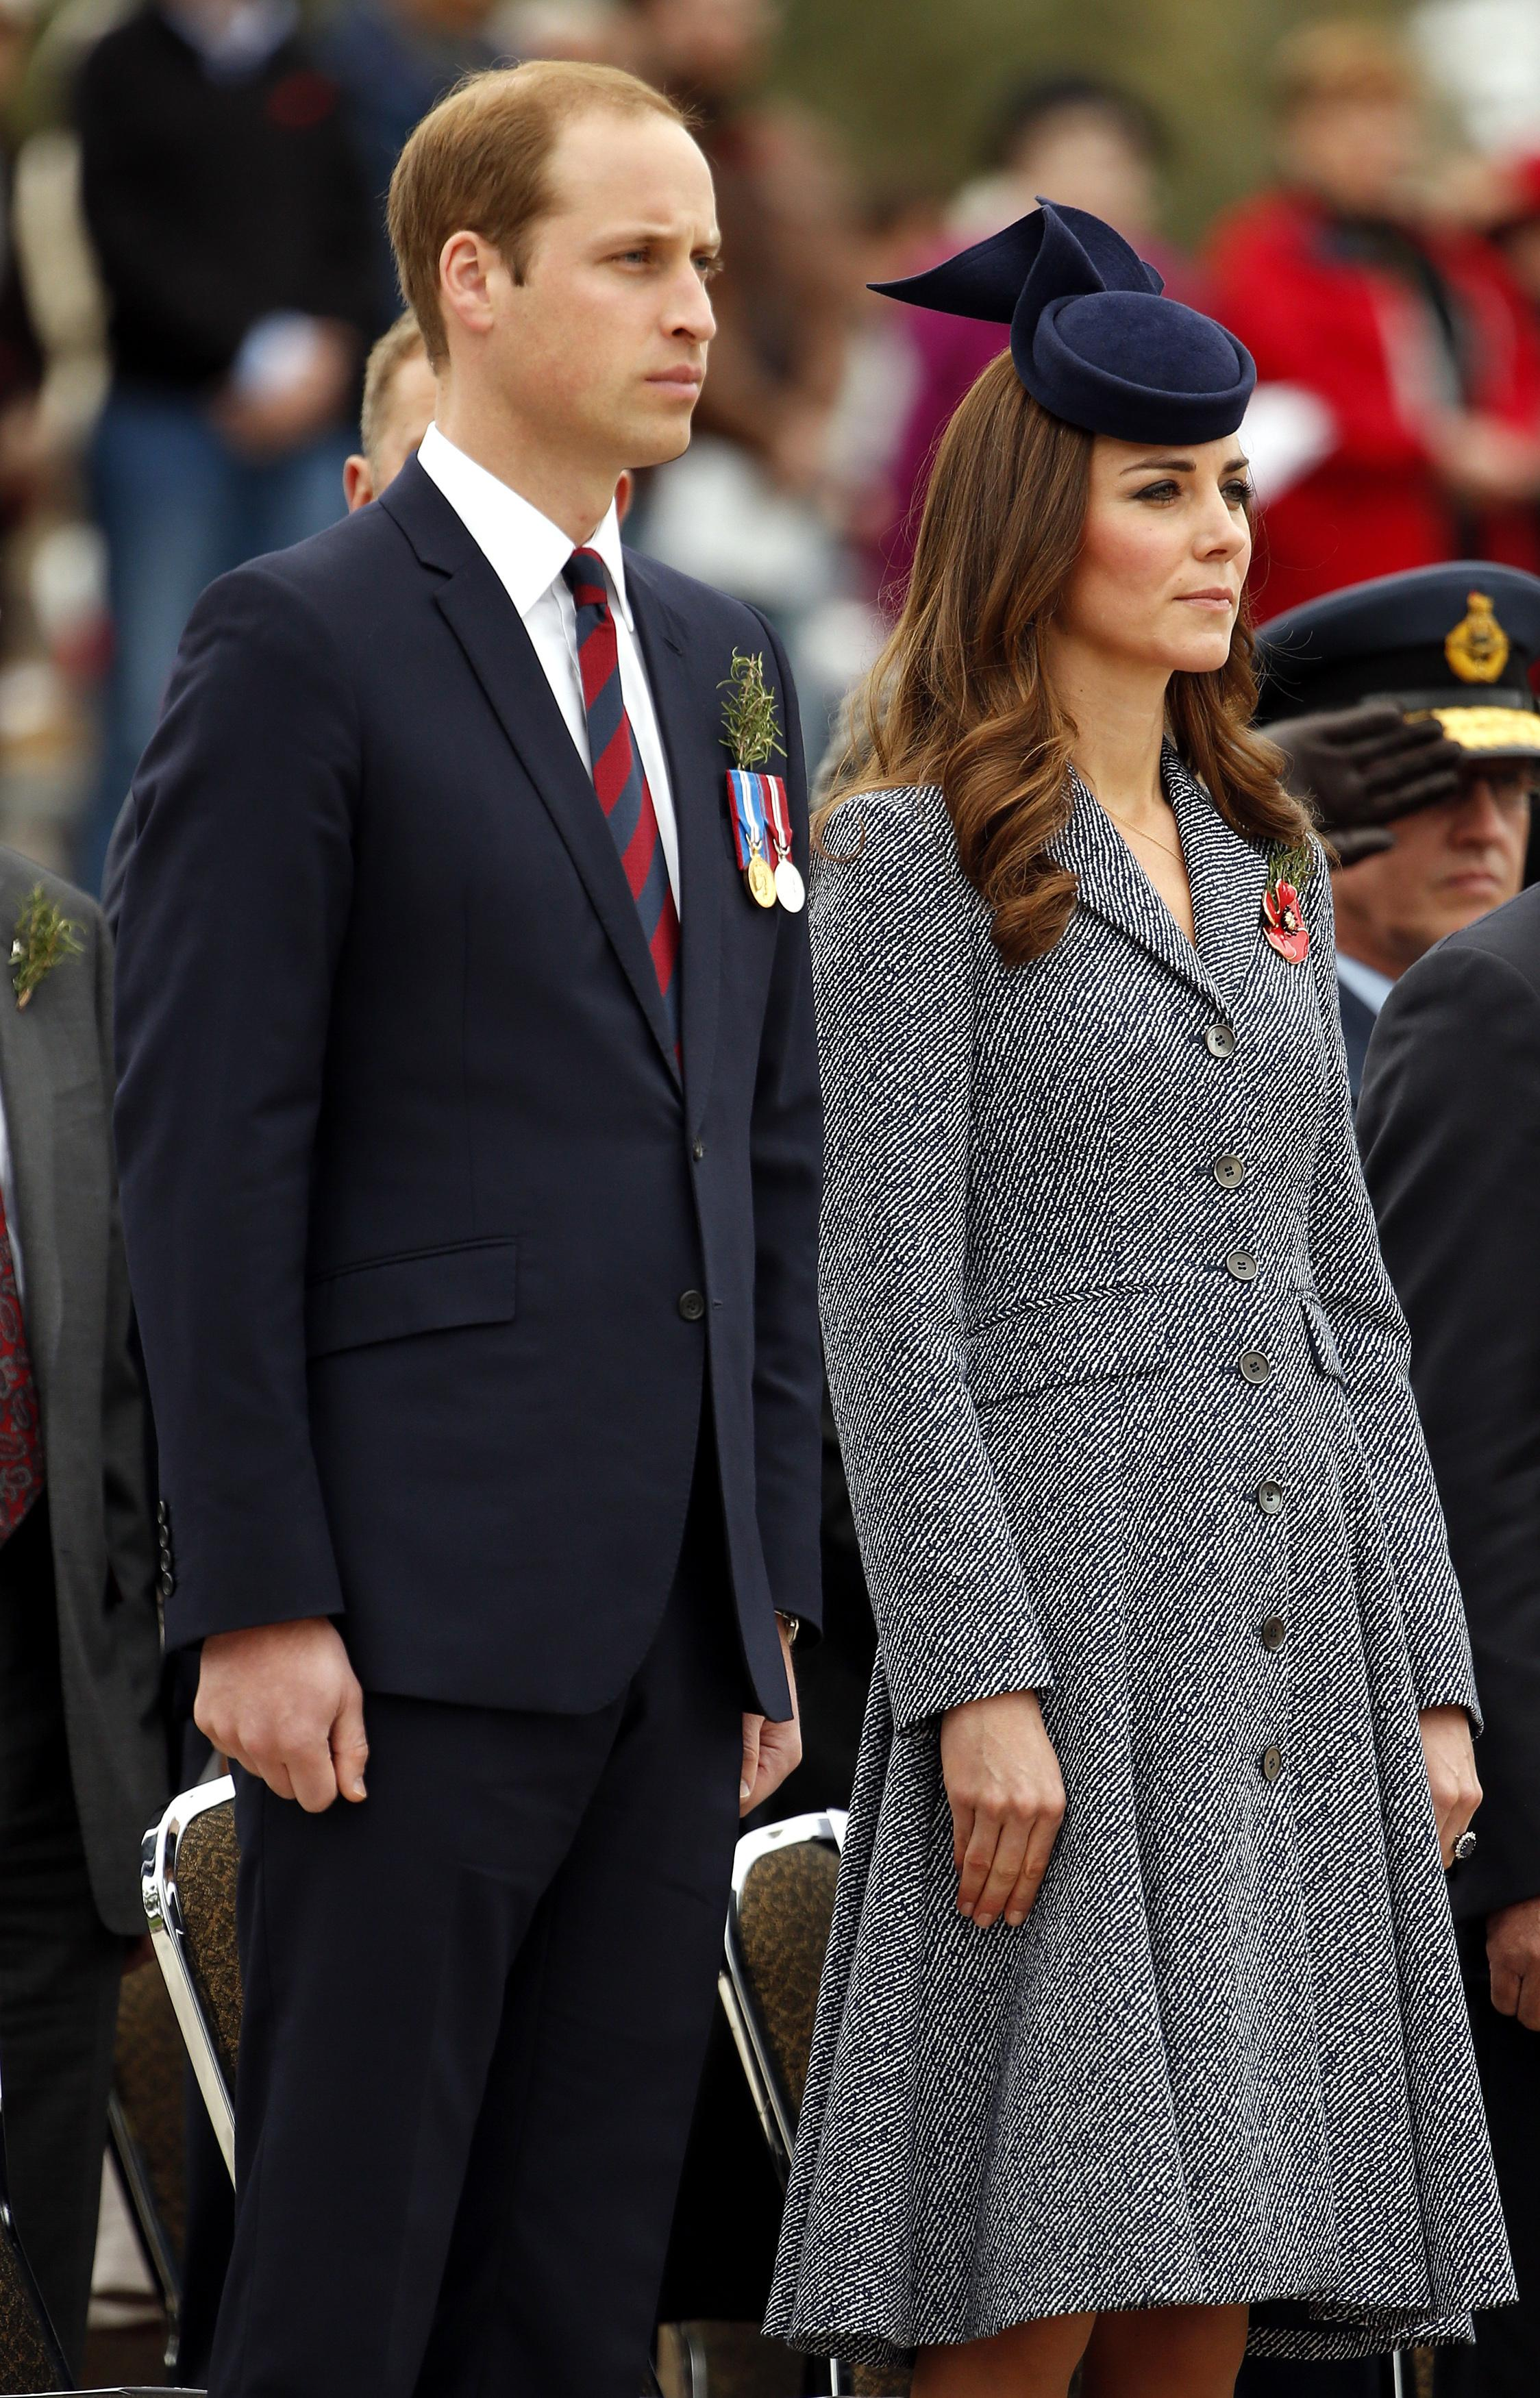 April 25 at Anzac Day remembrance service: Michael Kors dress